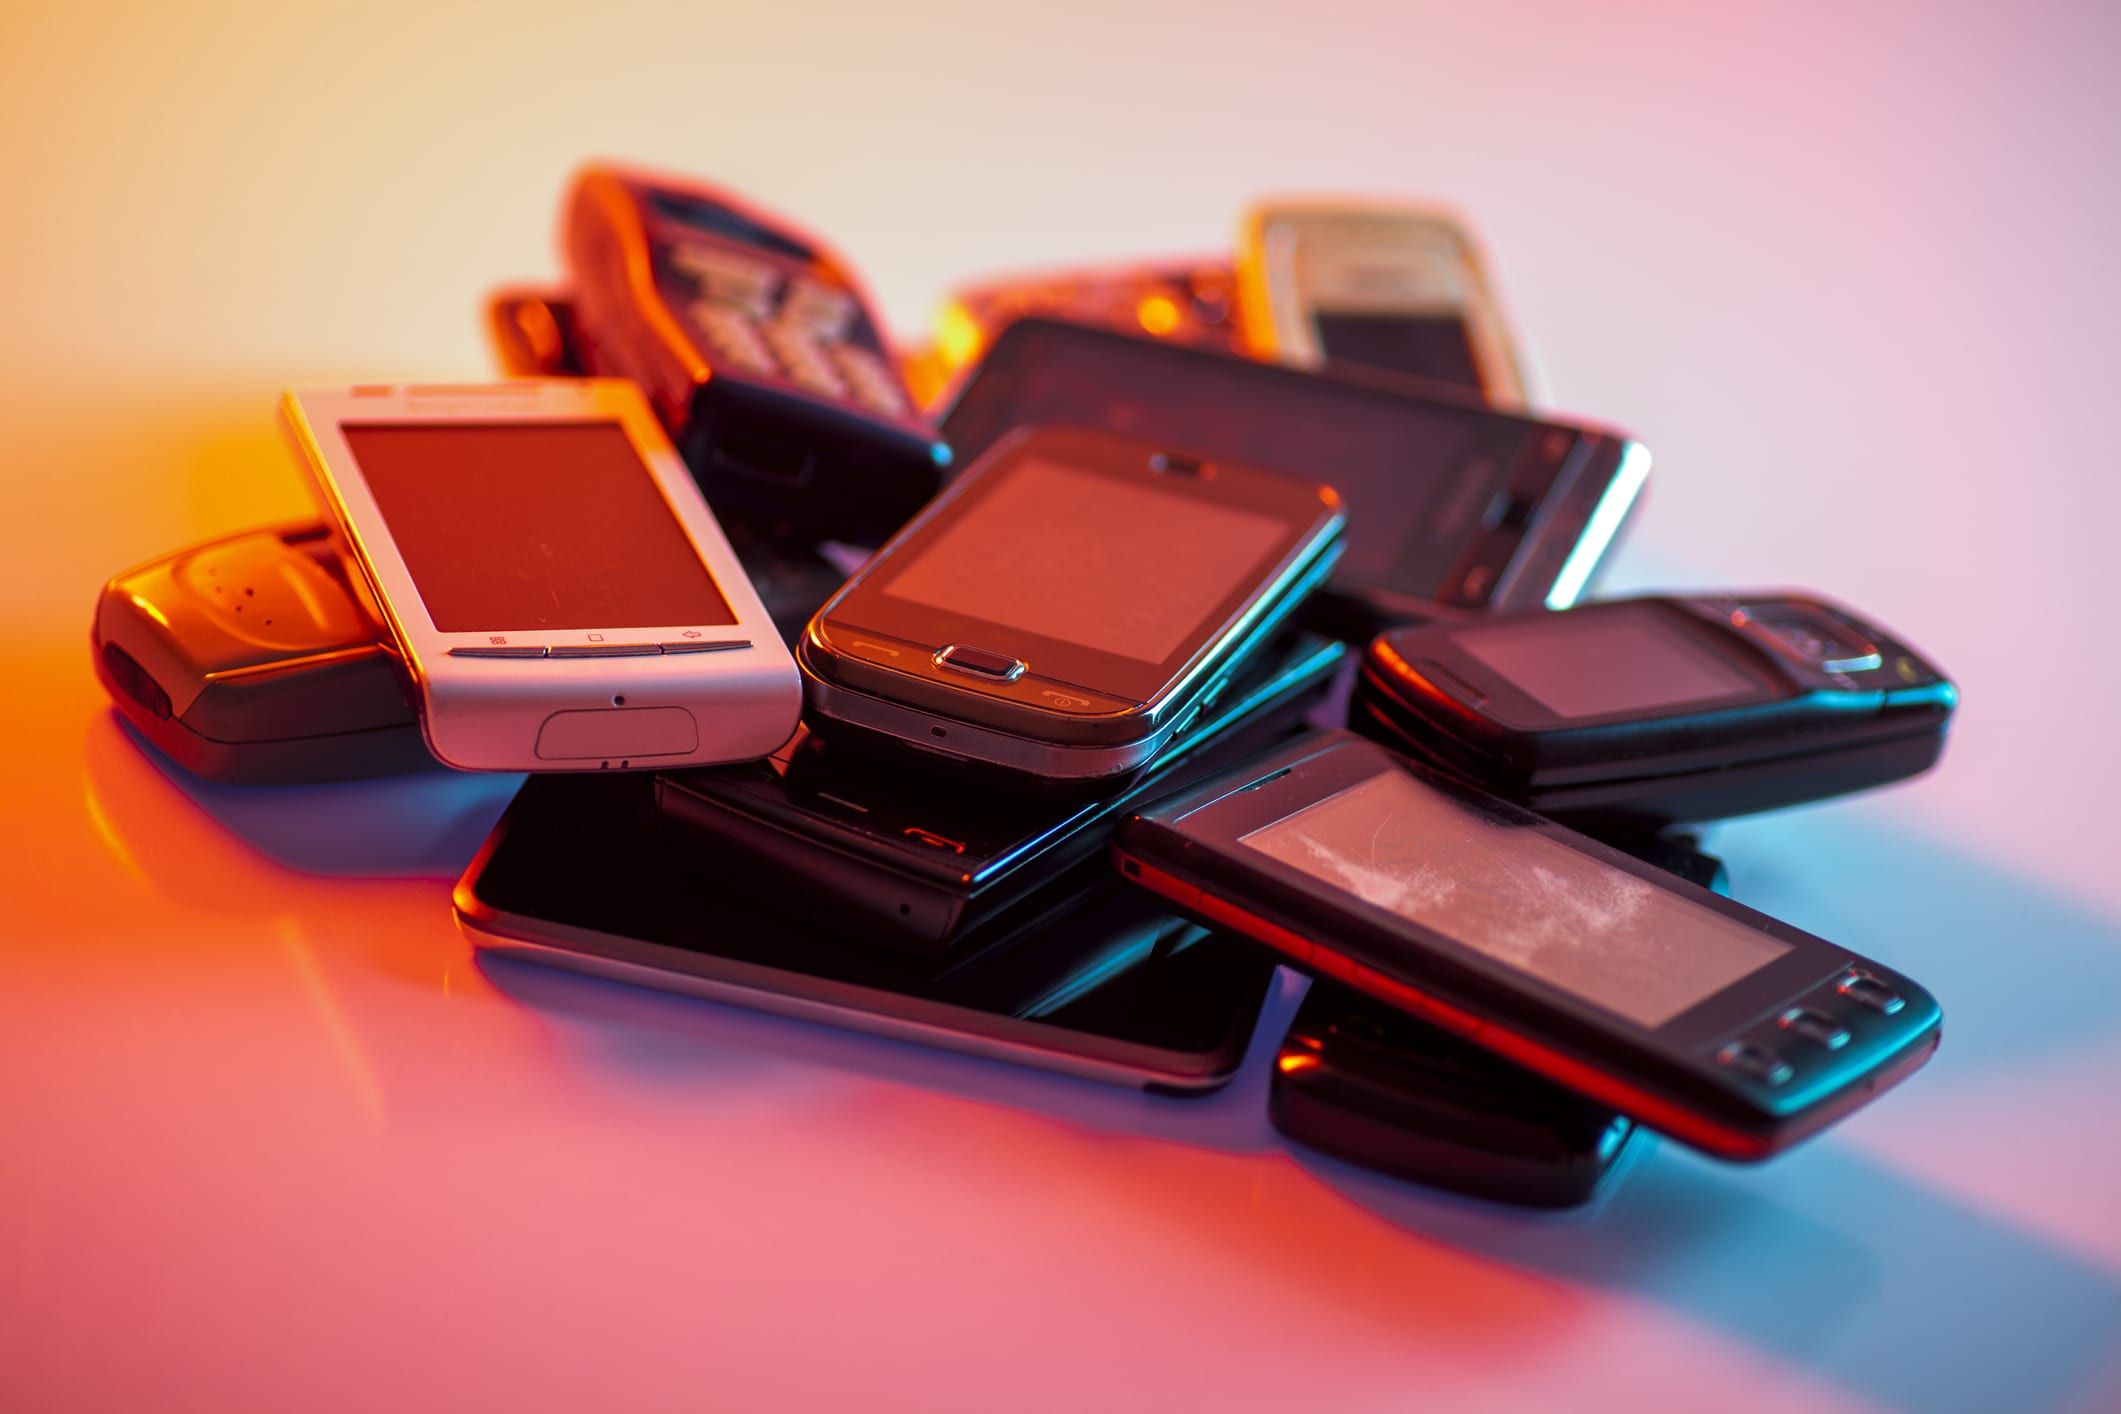 Cell phones in a pile